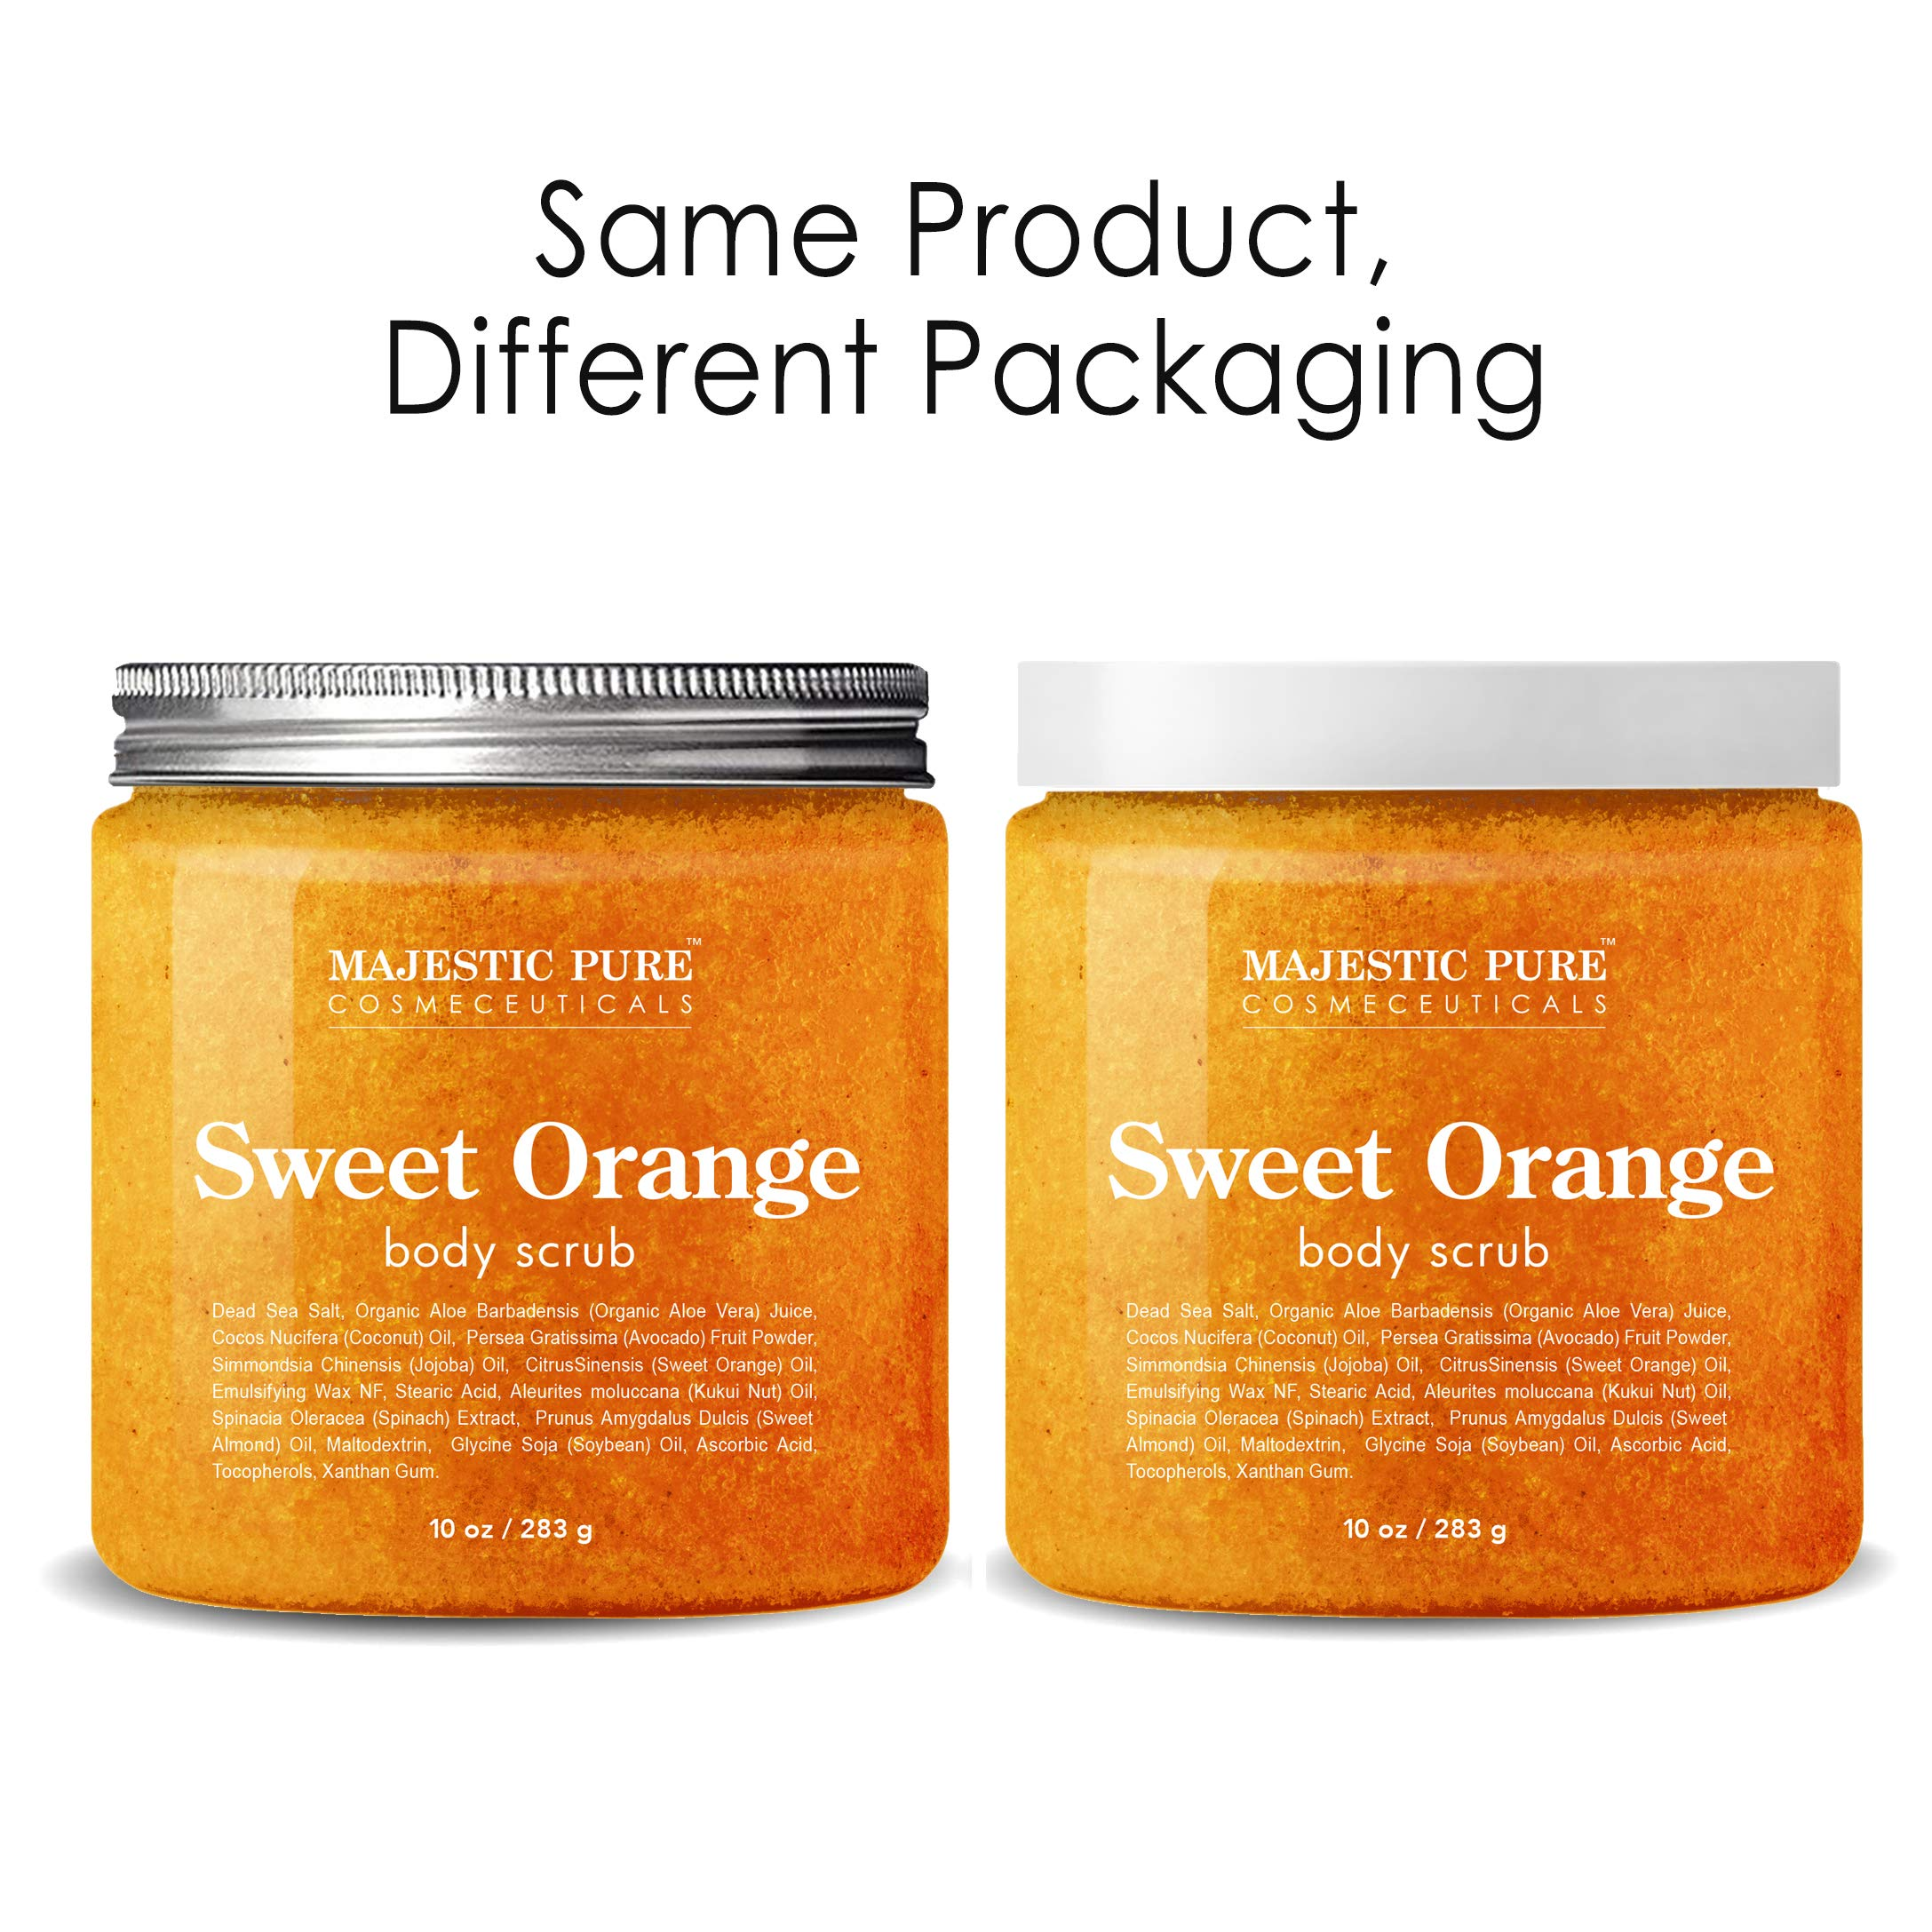 Majestic Pure Sweet Orange Body Scrub - Exfoliates, Moisturizes, and Nourishes Skin, 10 oz by Majestic Pure